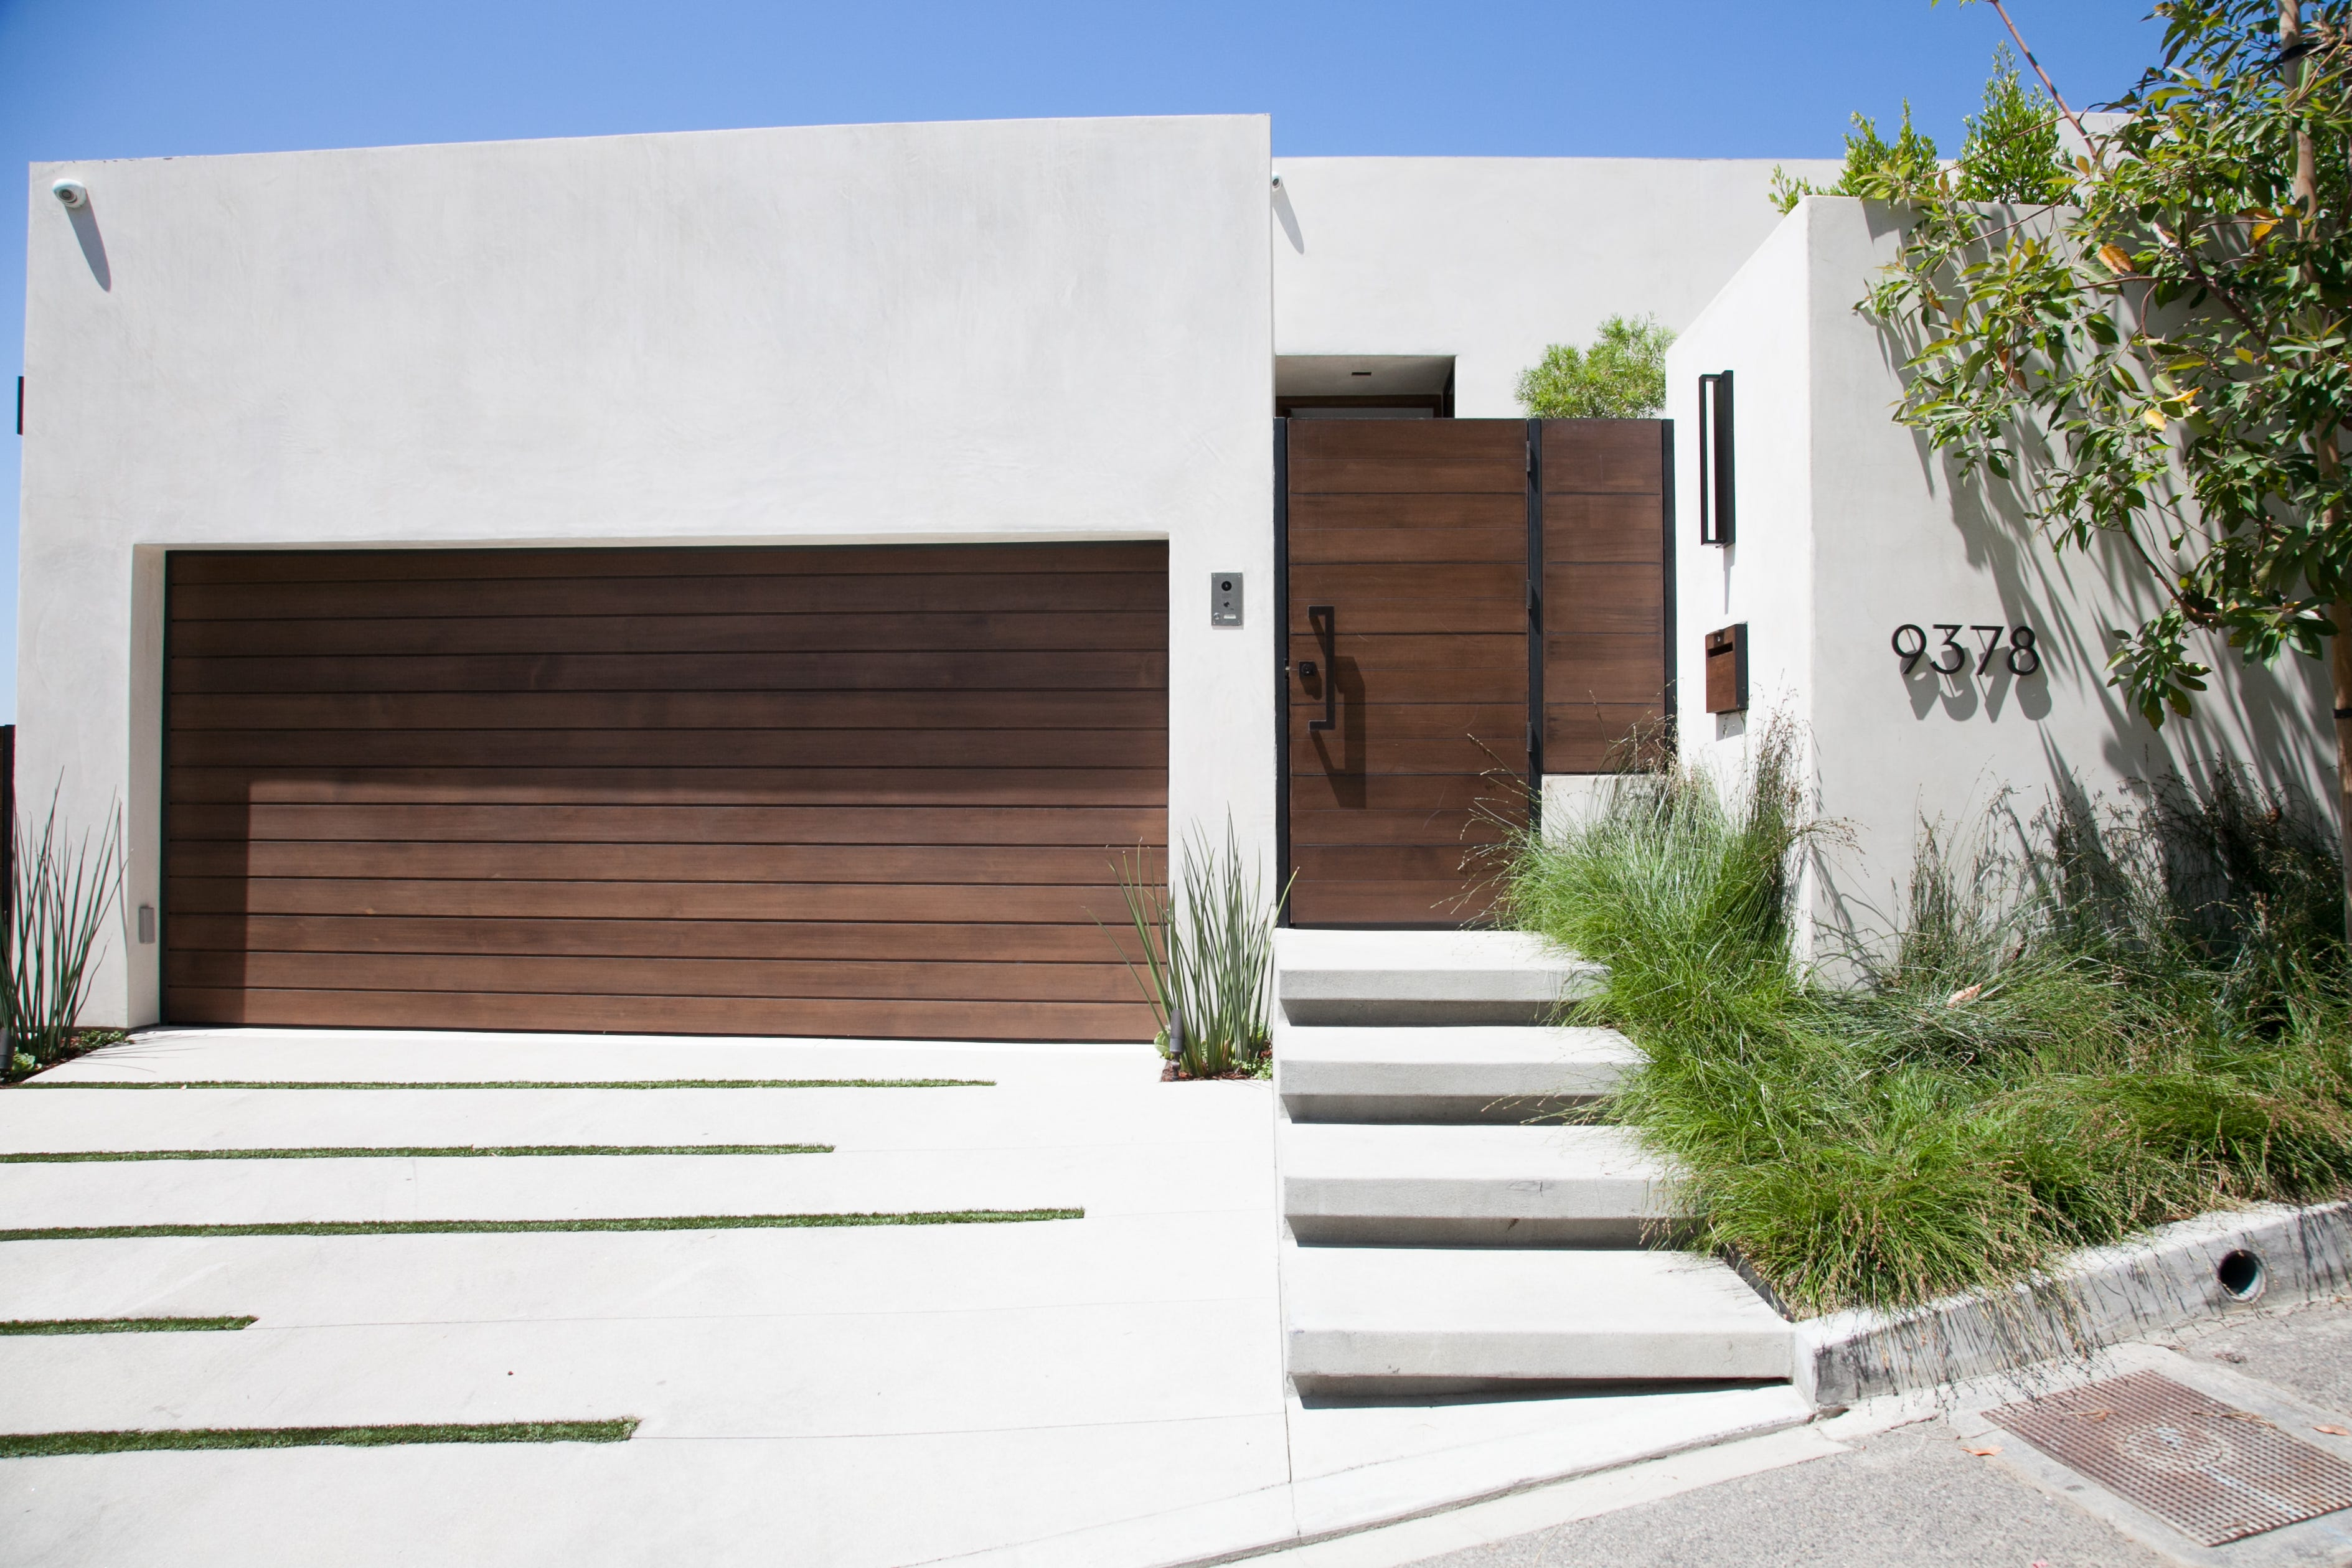 Go inside this fireproof home in Los Angeles